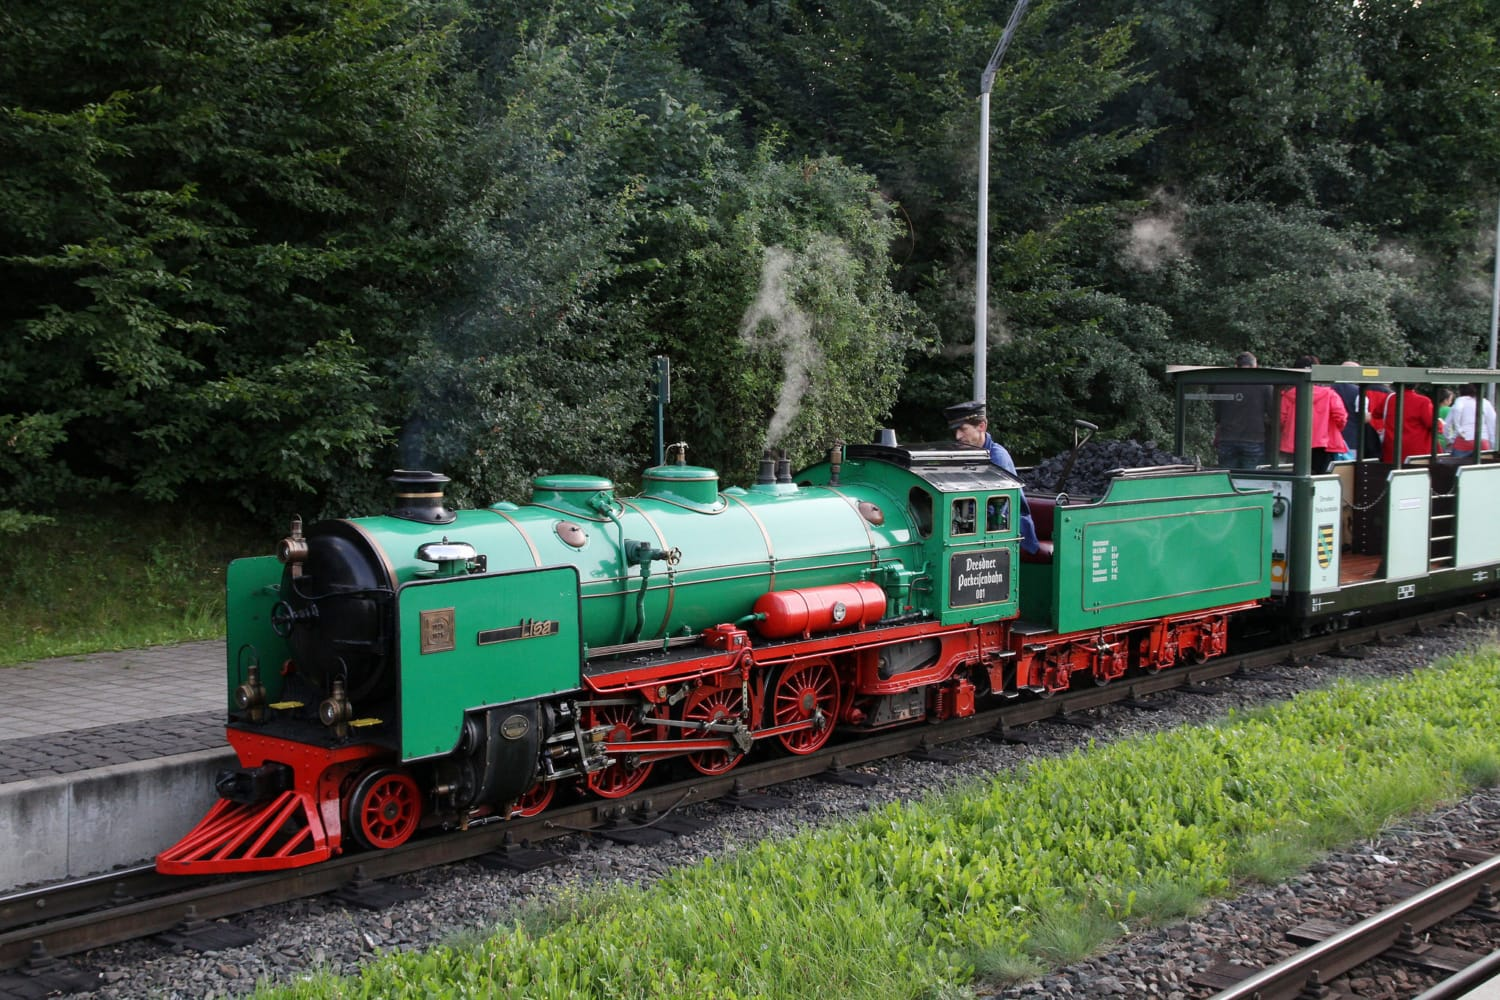 Alte Lokomotive in Park